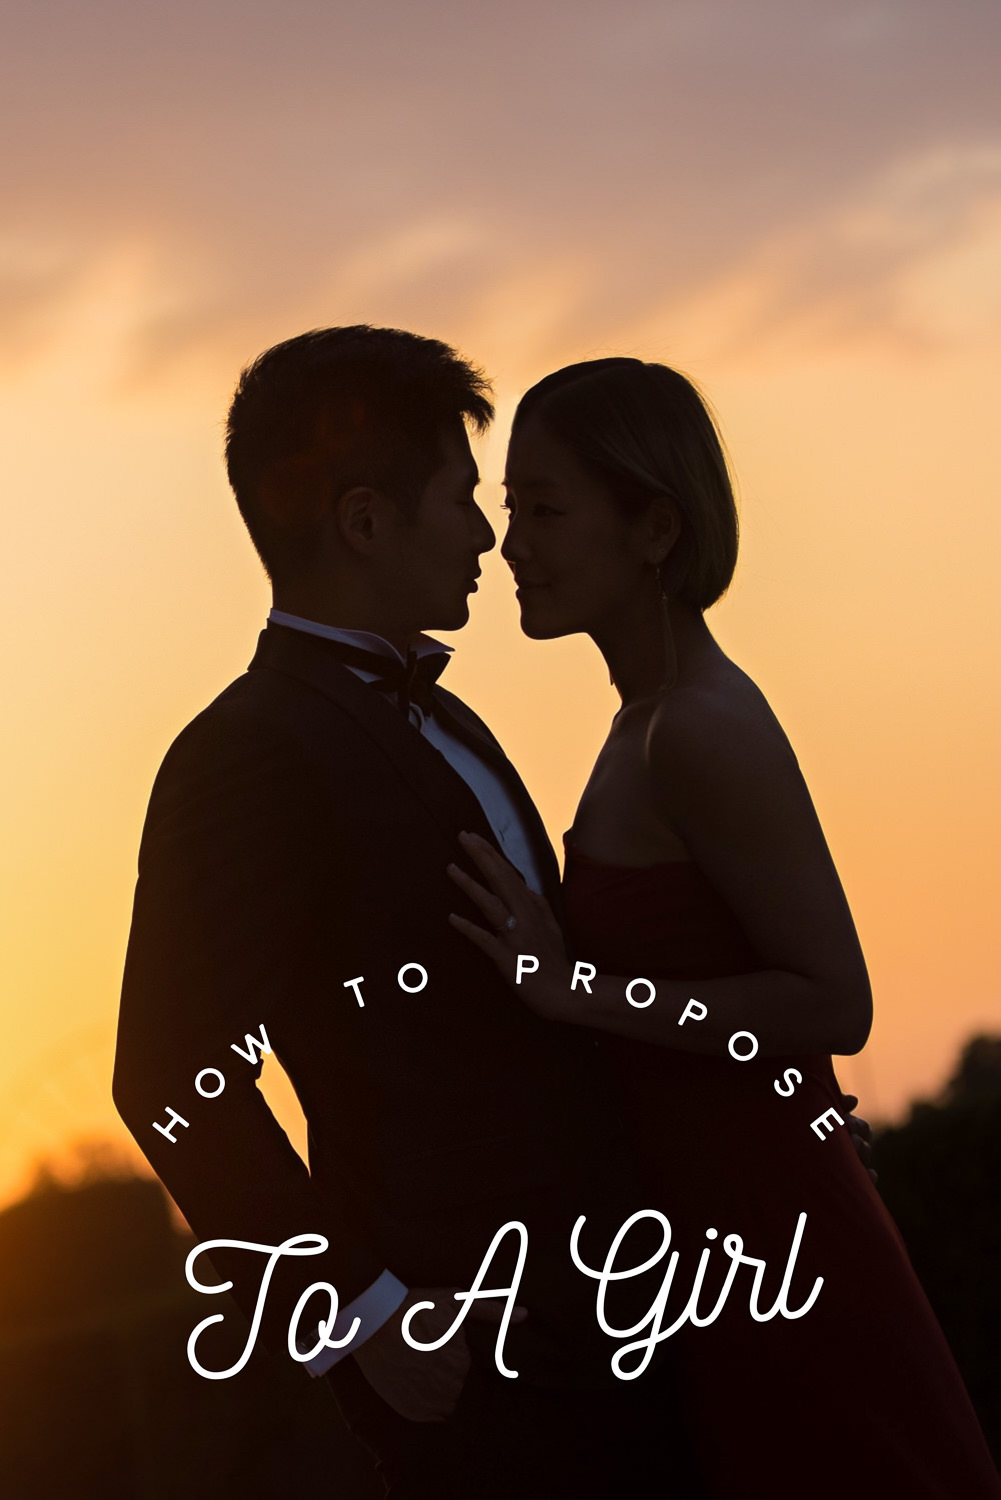 How to propose to a girl romantic proposal ideas